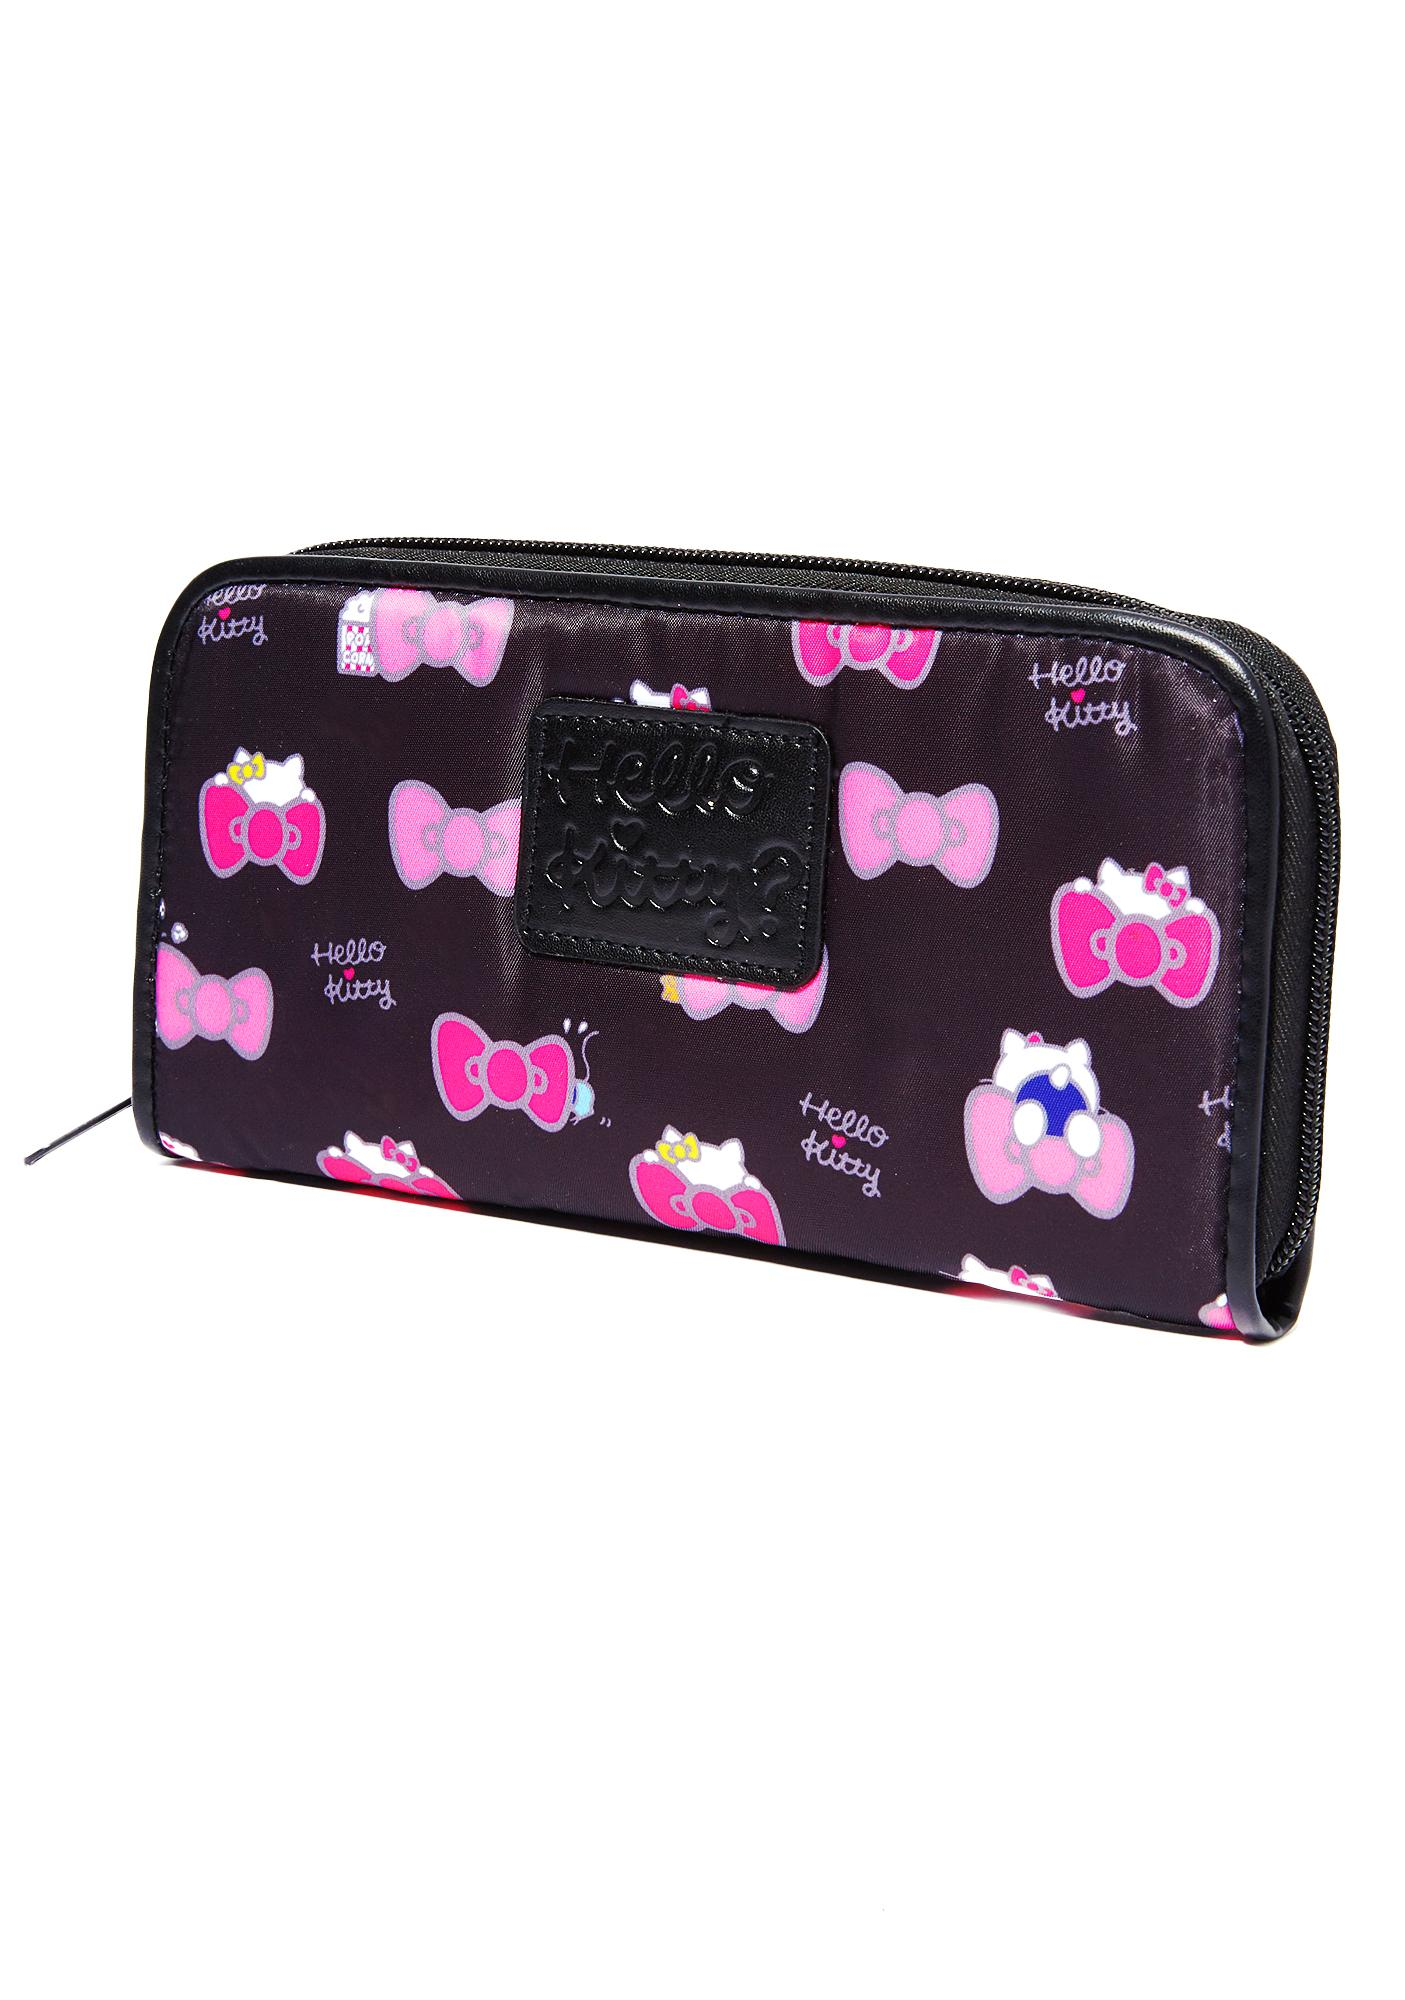 Sanrio Long Wallet